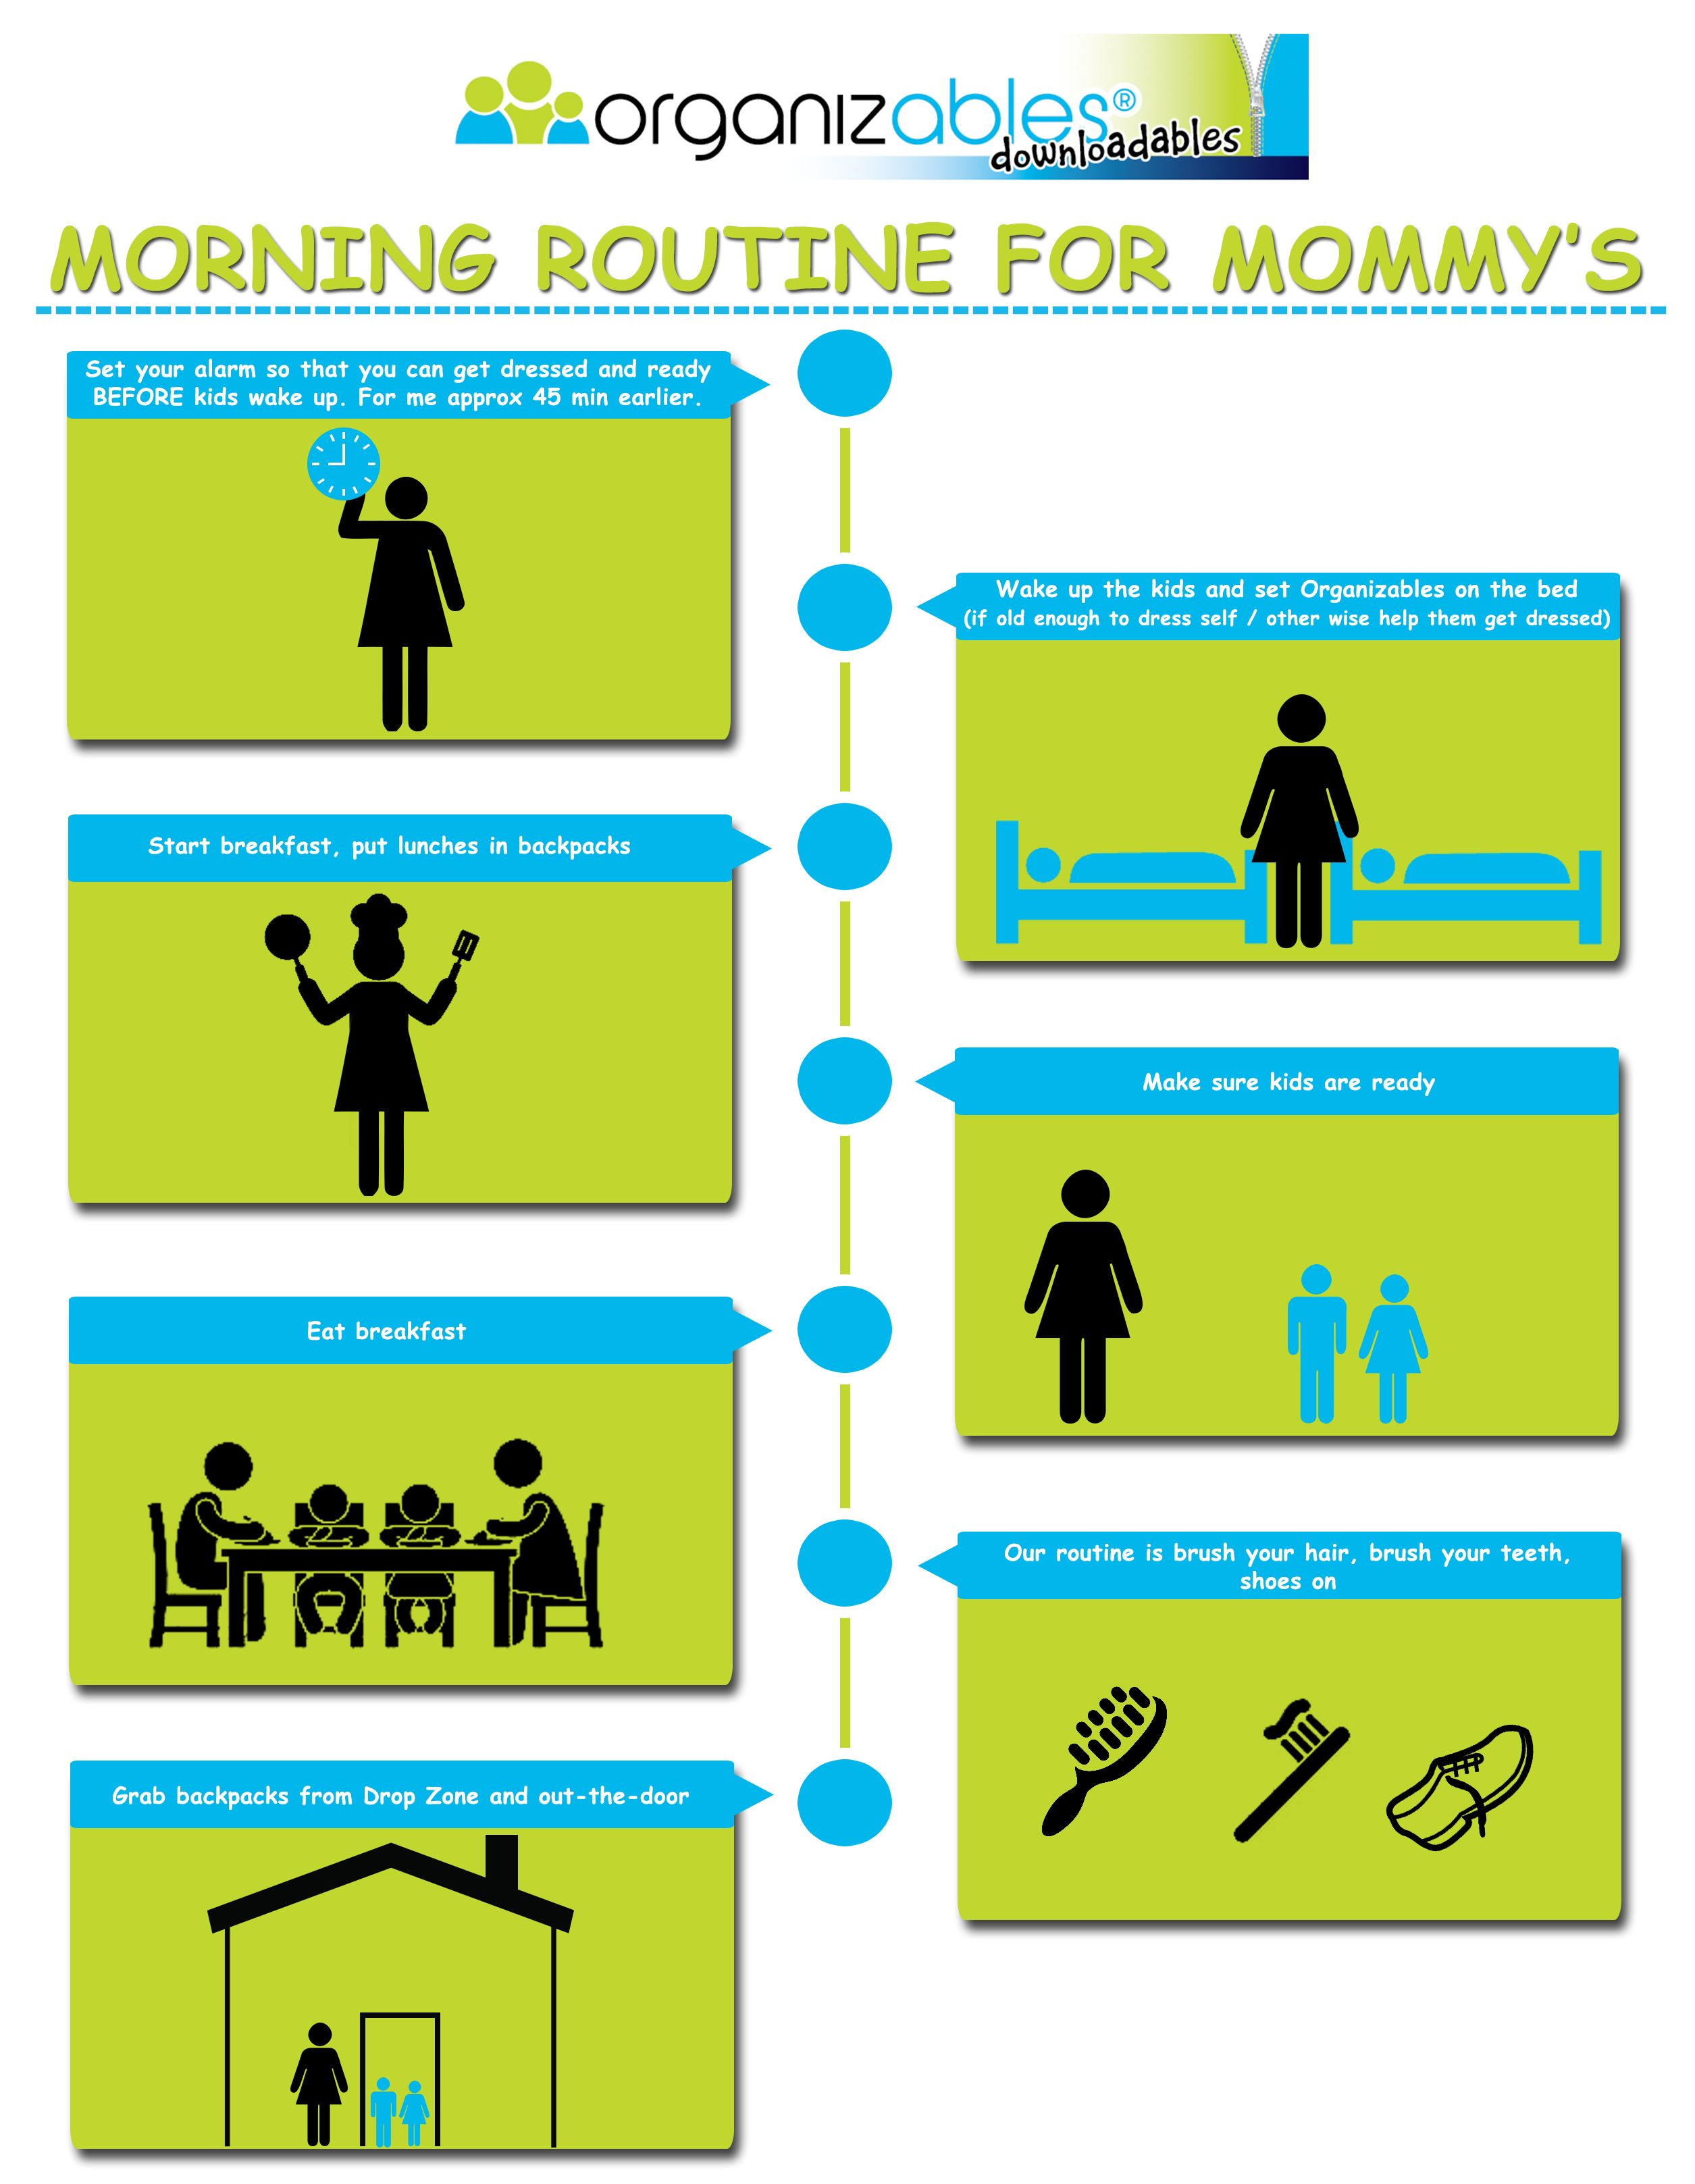 Morning routine for Mommy's. If Mom is organized you will have a smooth and peaceful morning!